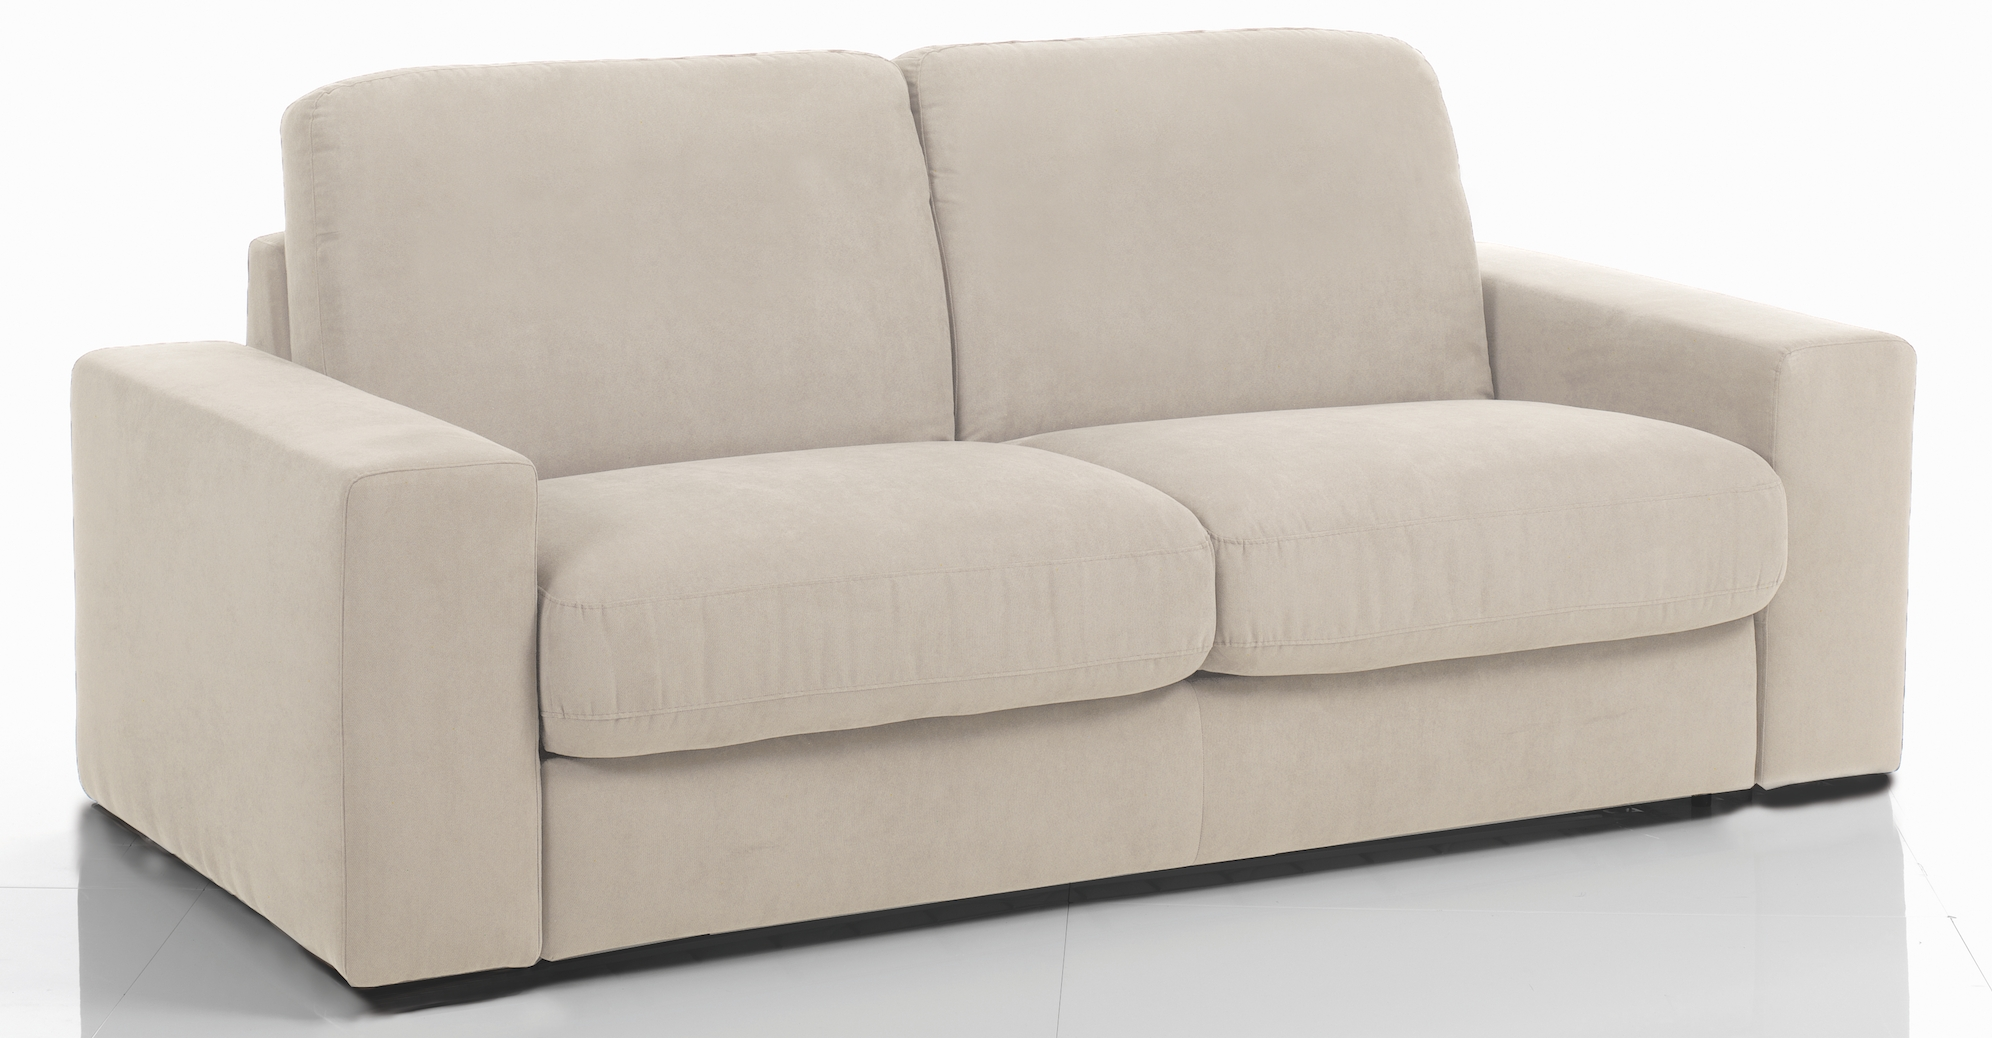 Canap lit beige royal sofa id e de canap et meuble for Meuble de canape